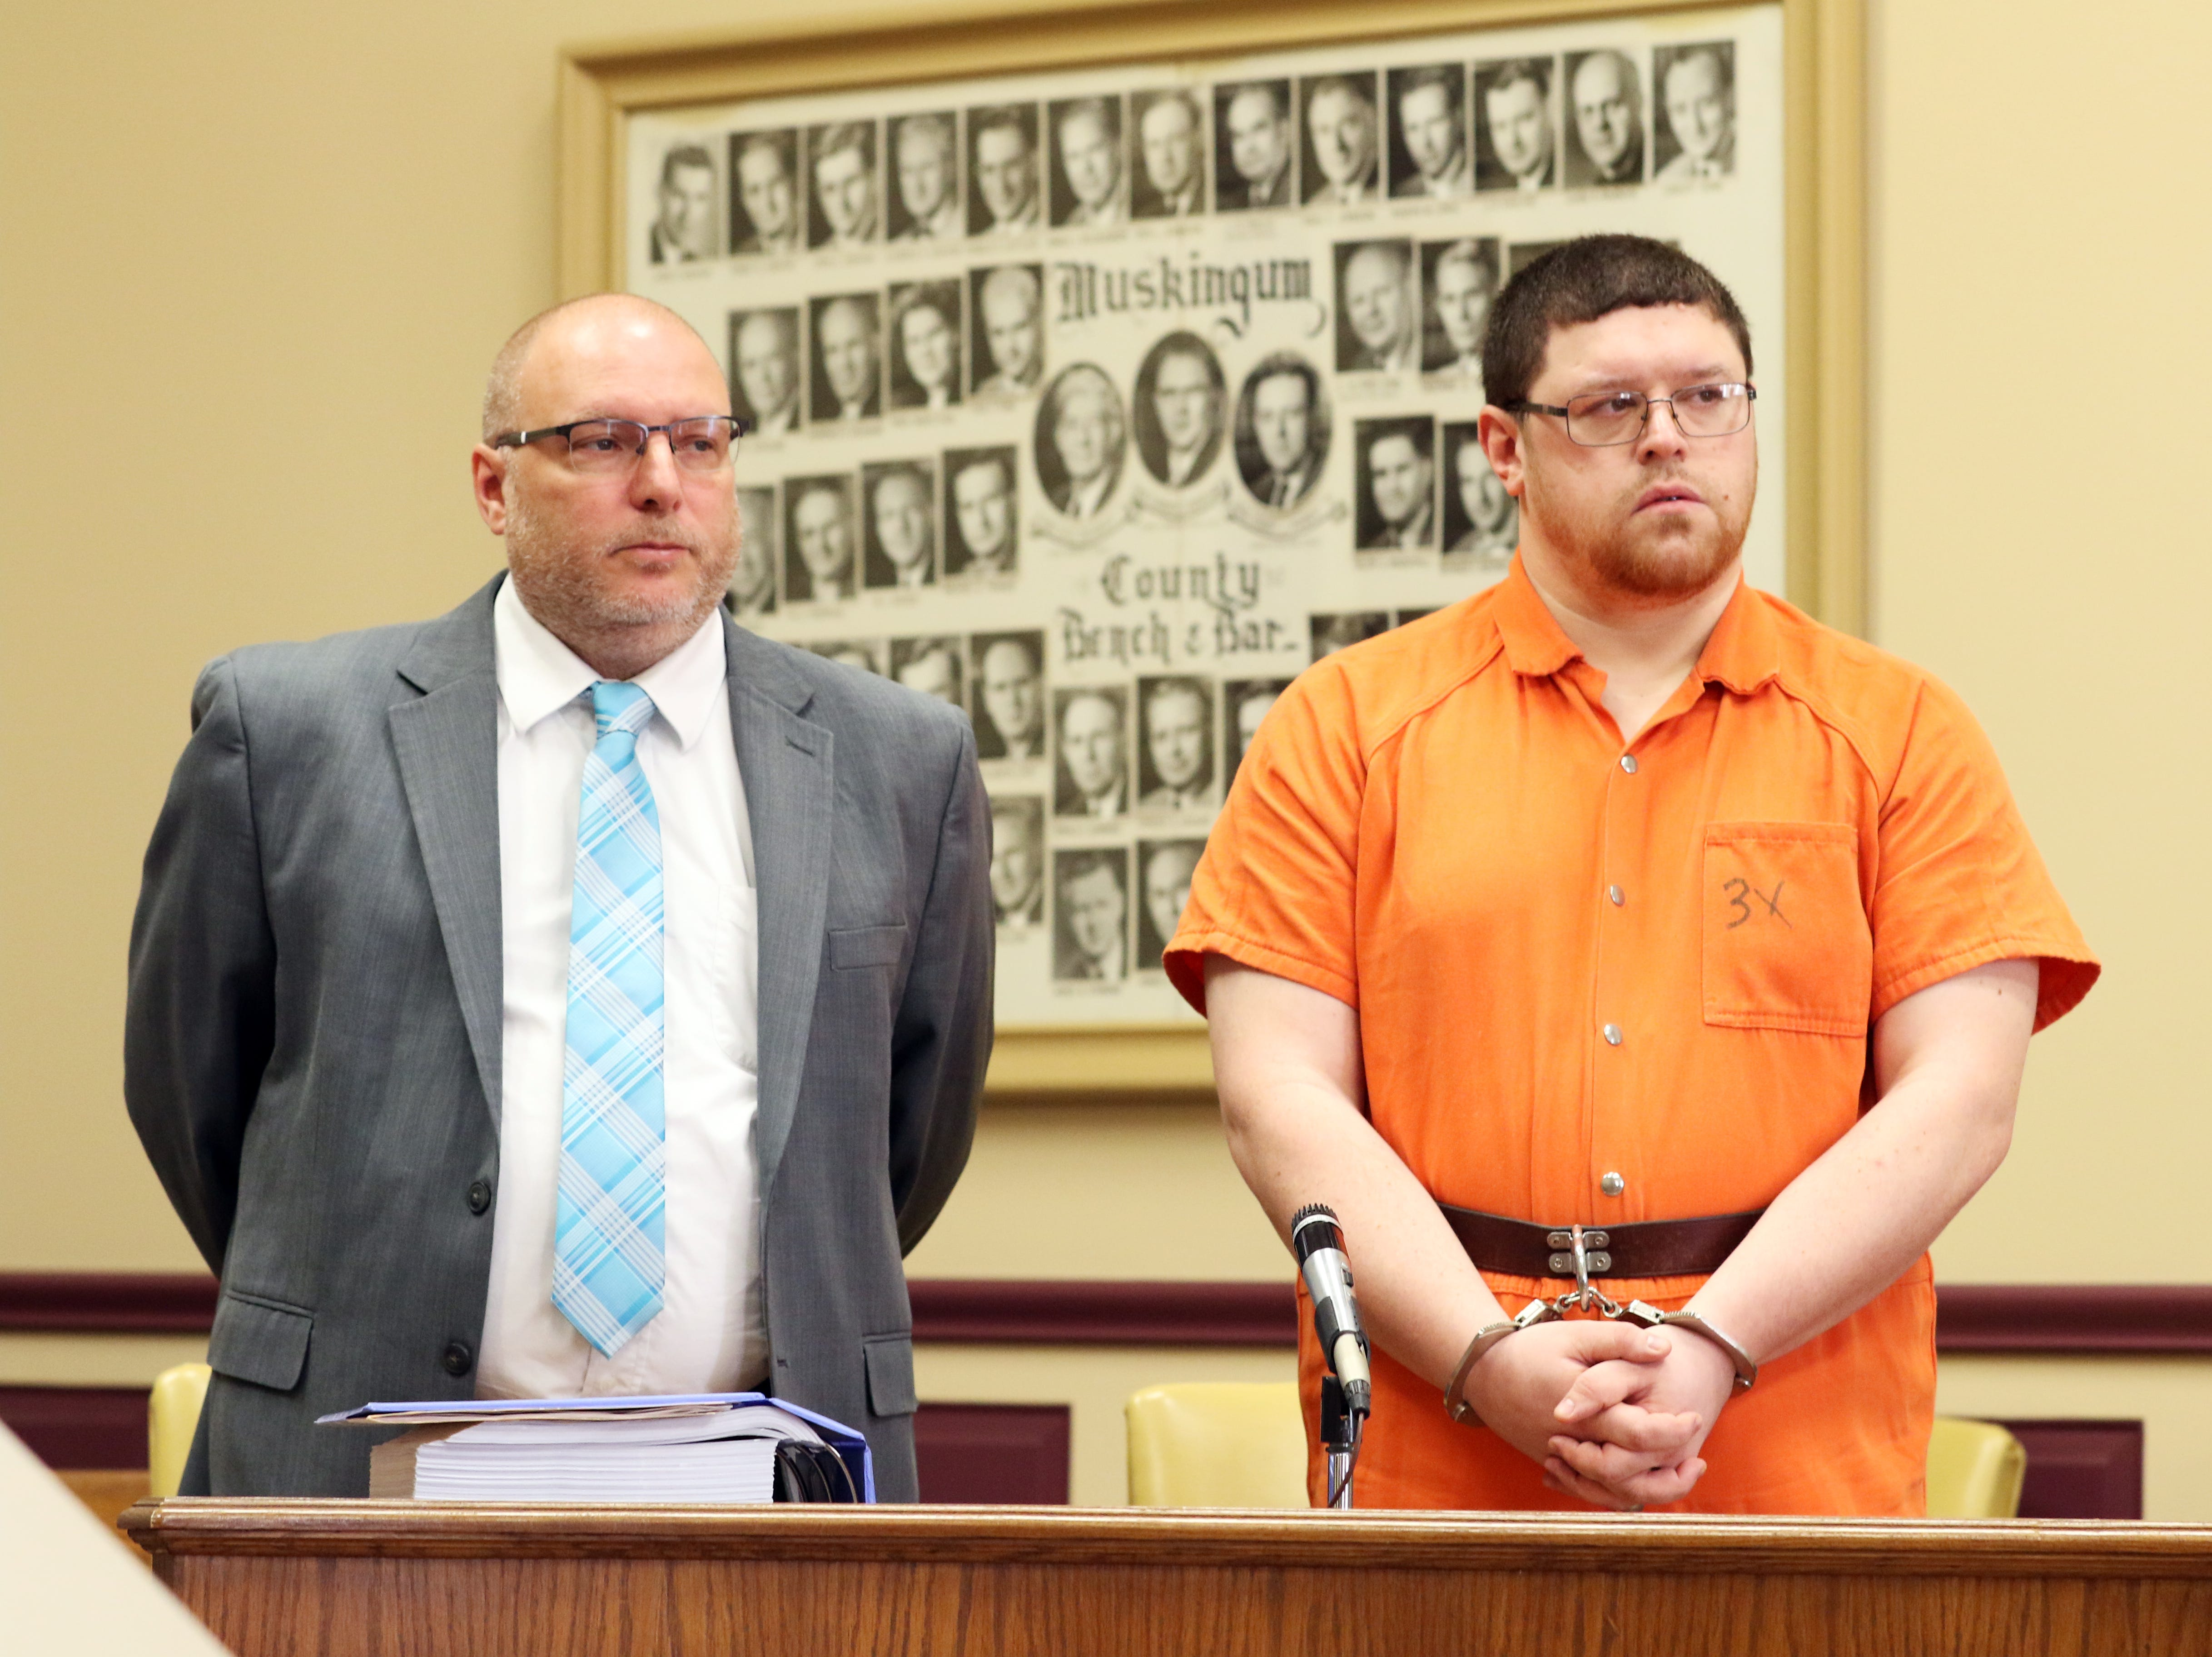 Derek Shaffer plead guilty in Muskingum County Common Pleas Court to several counts related to sex crimes against children while employed at CareyTown Preschool.